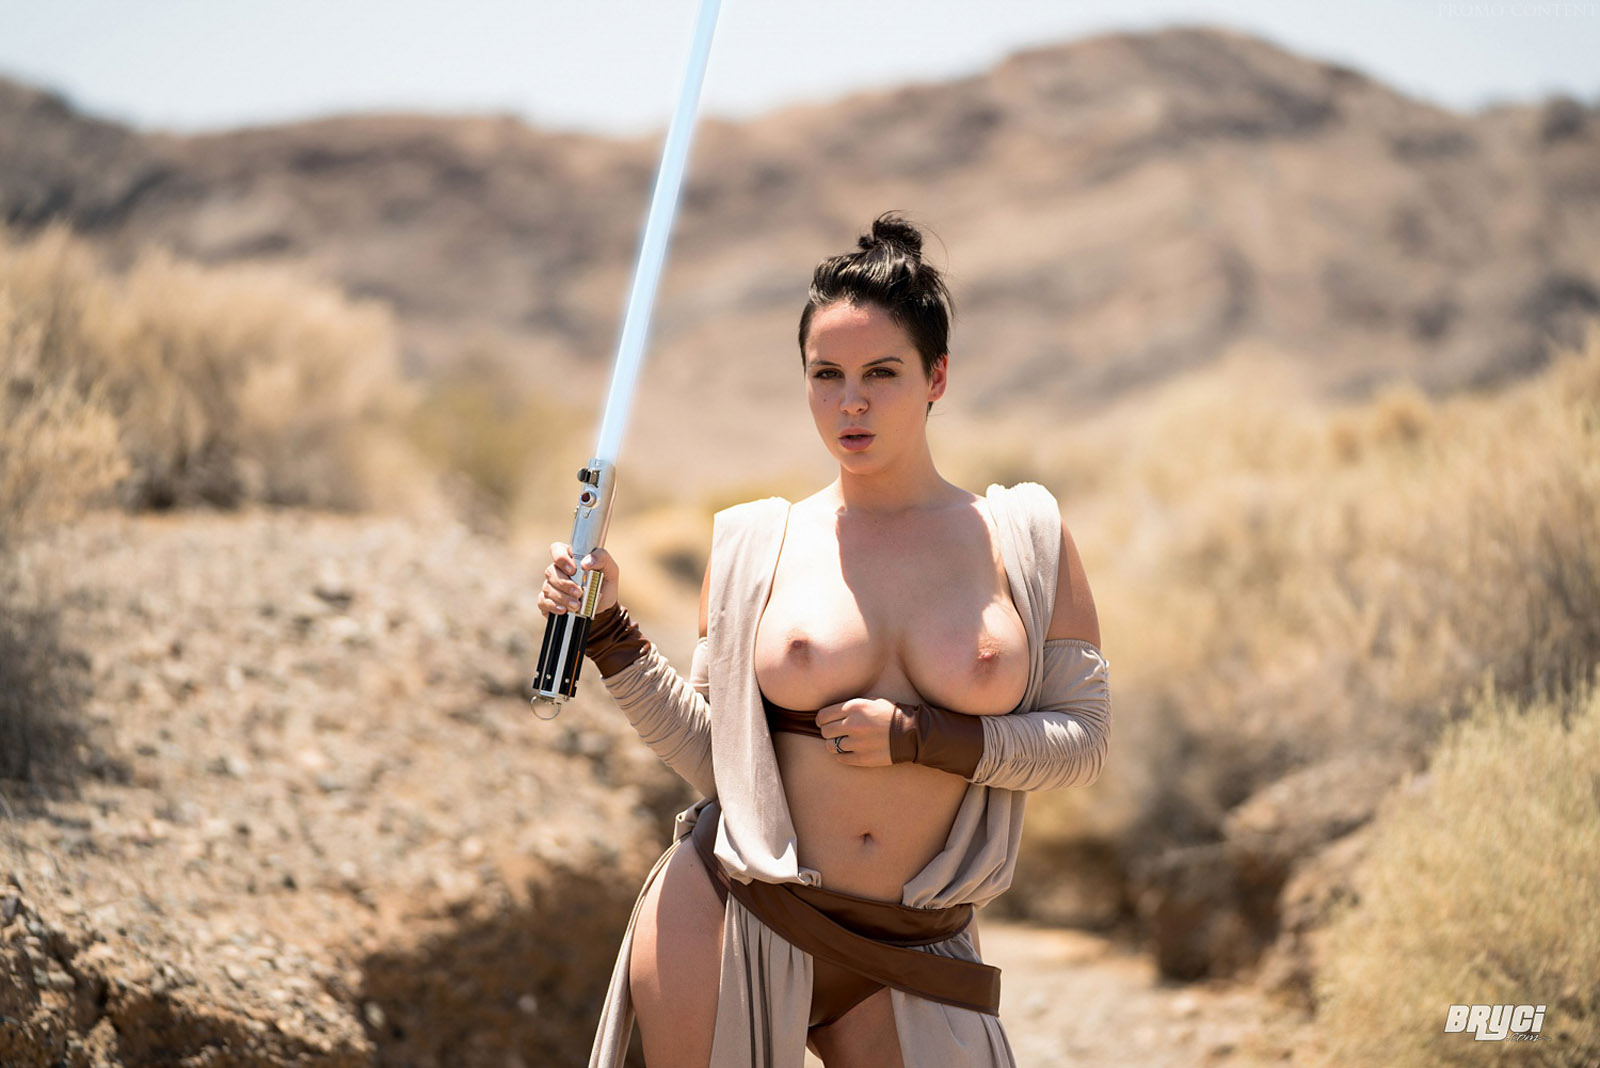 Hot Starwars Girl Fucking A Lightsaber